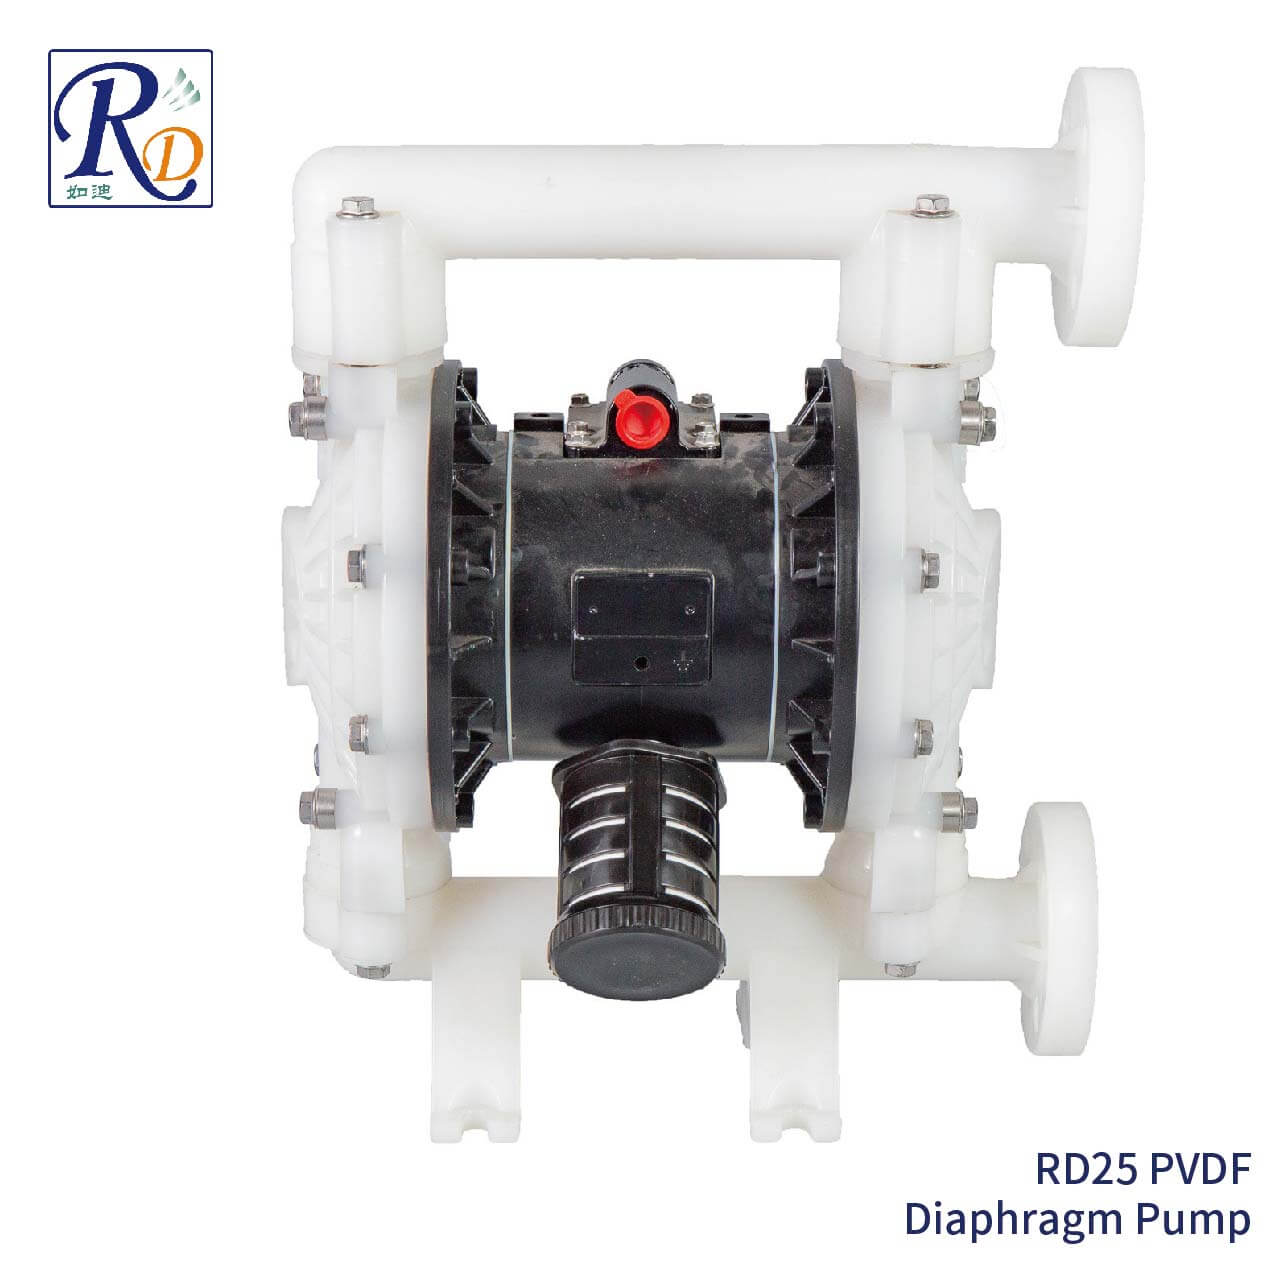 RD25 PVDF Diaphragm Pump